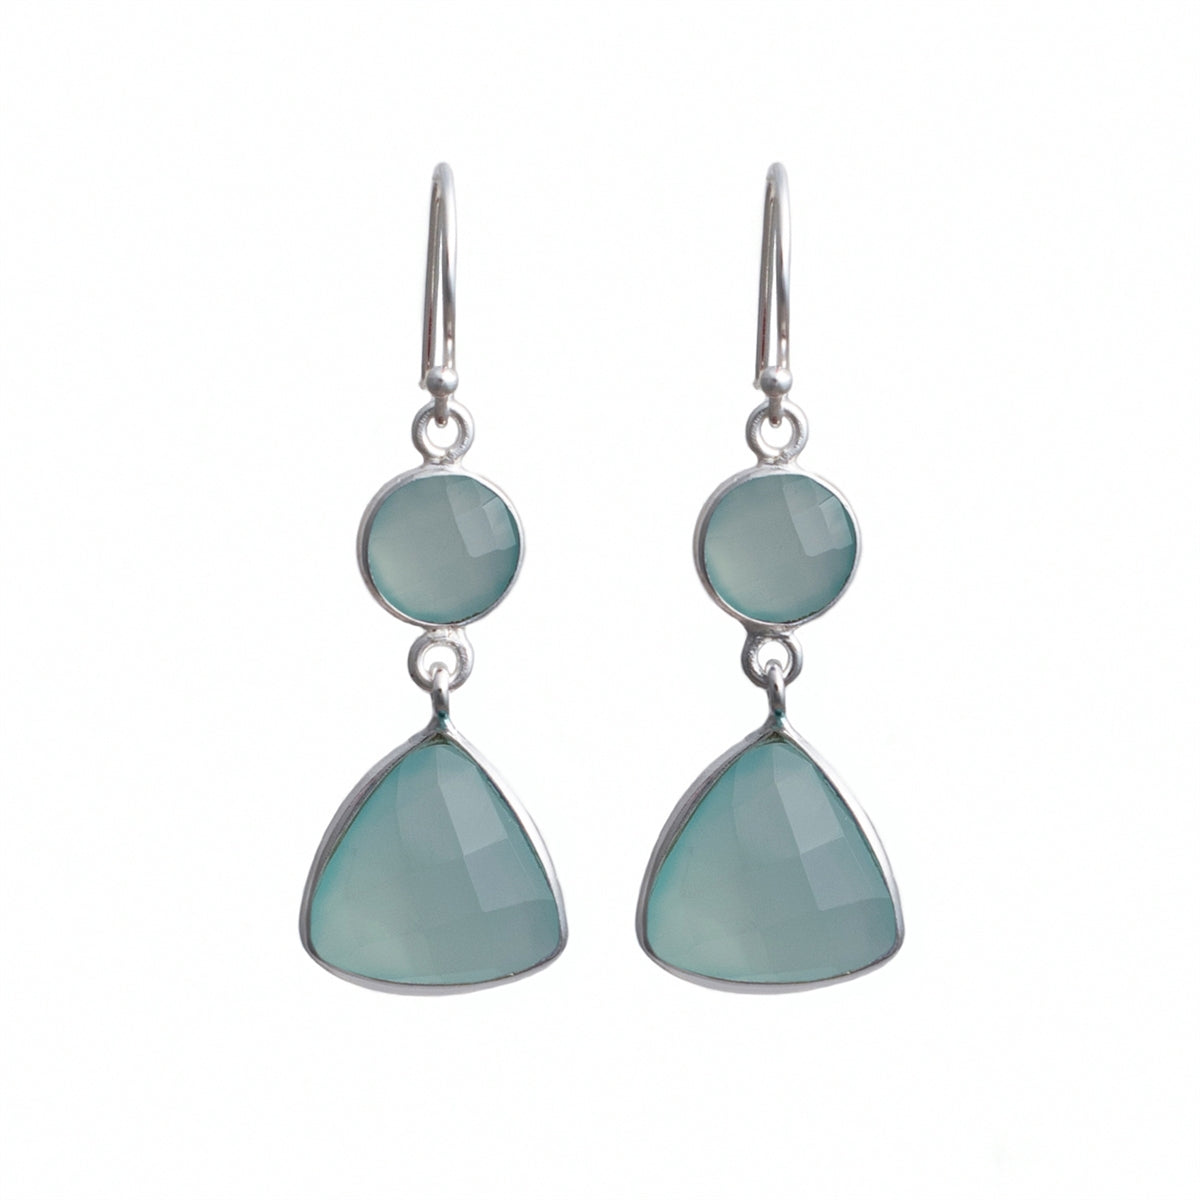 Semiprecious Stone Earrings - Triangular